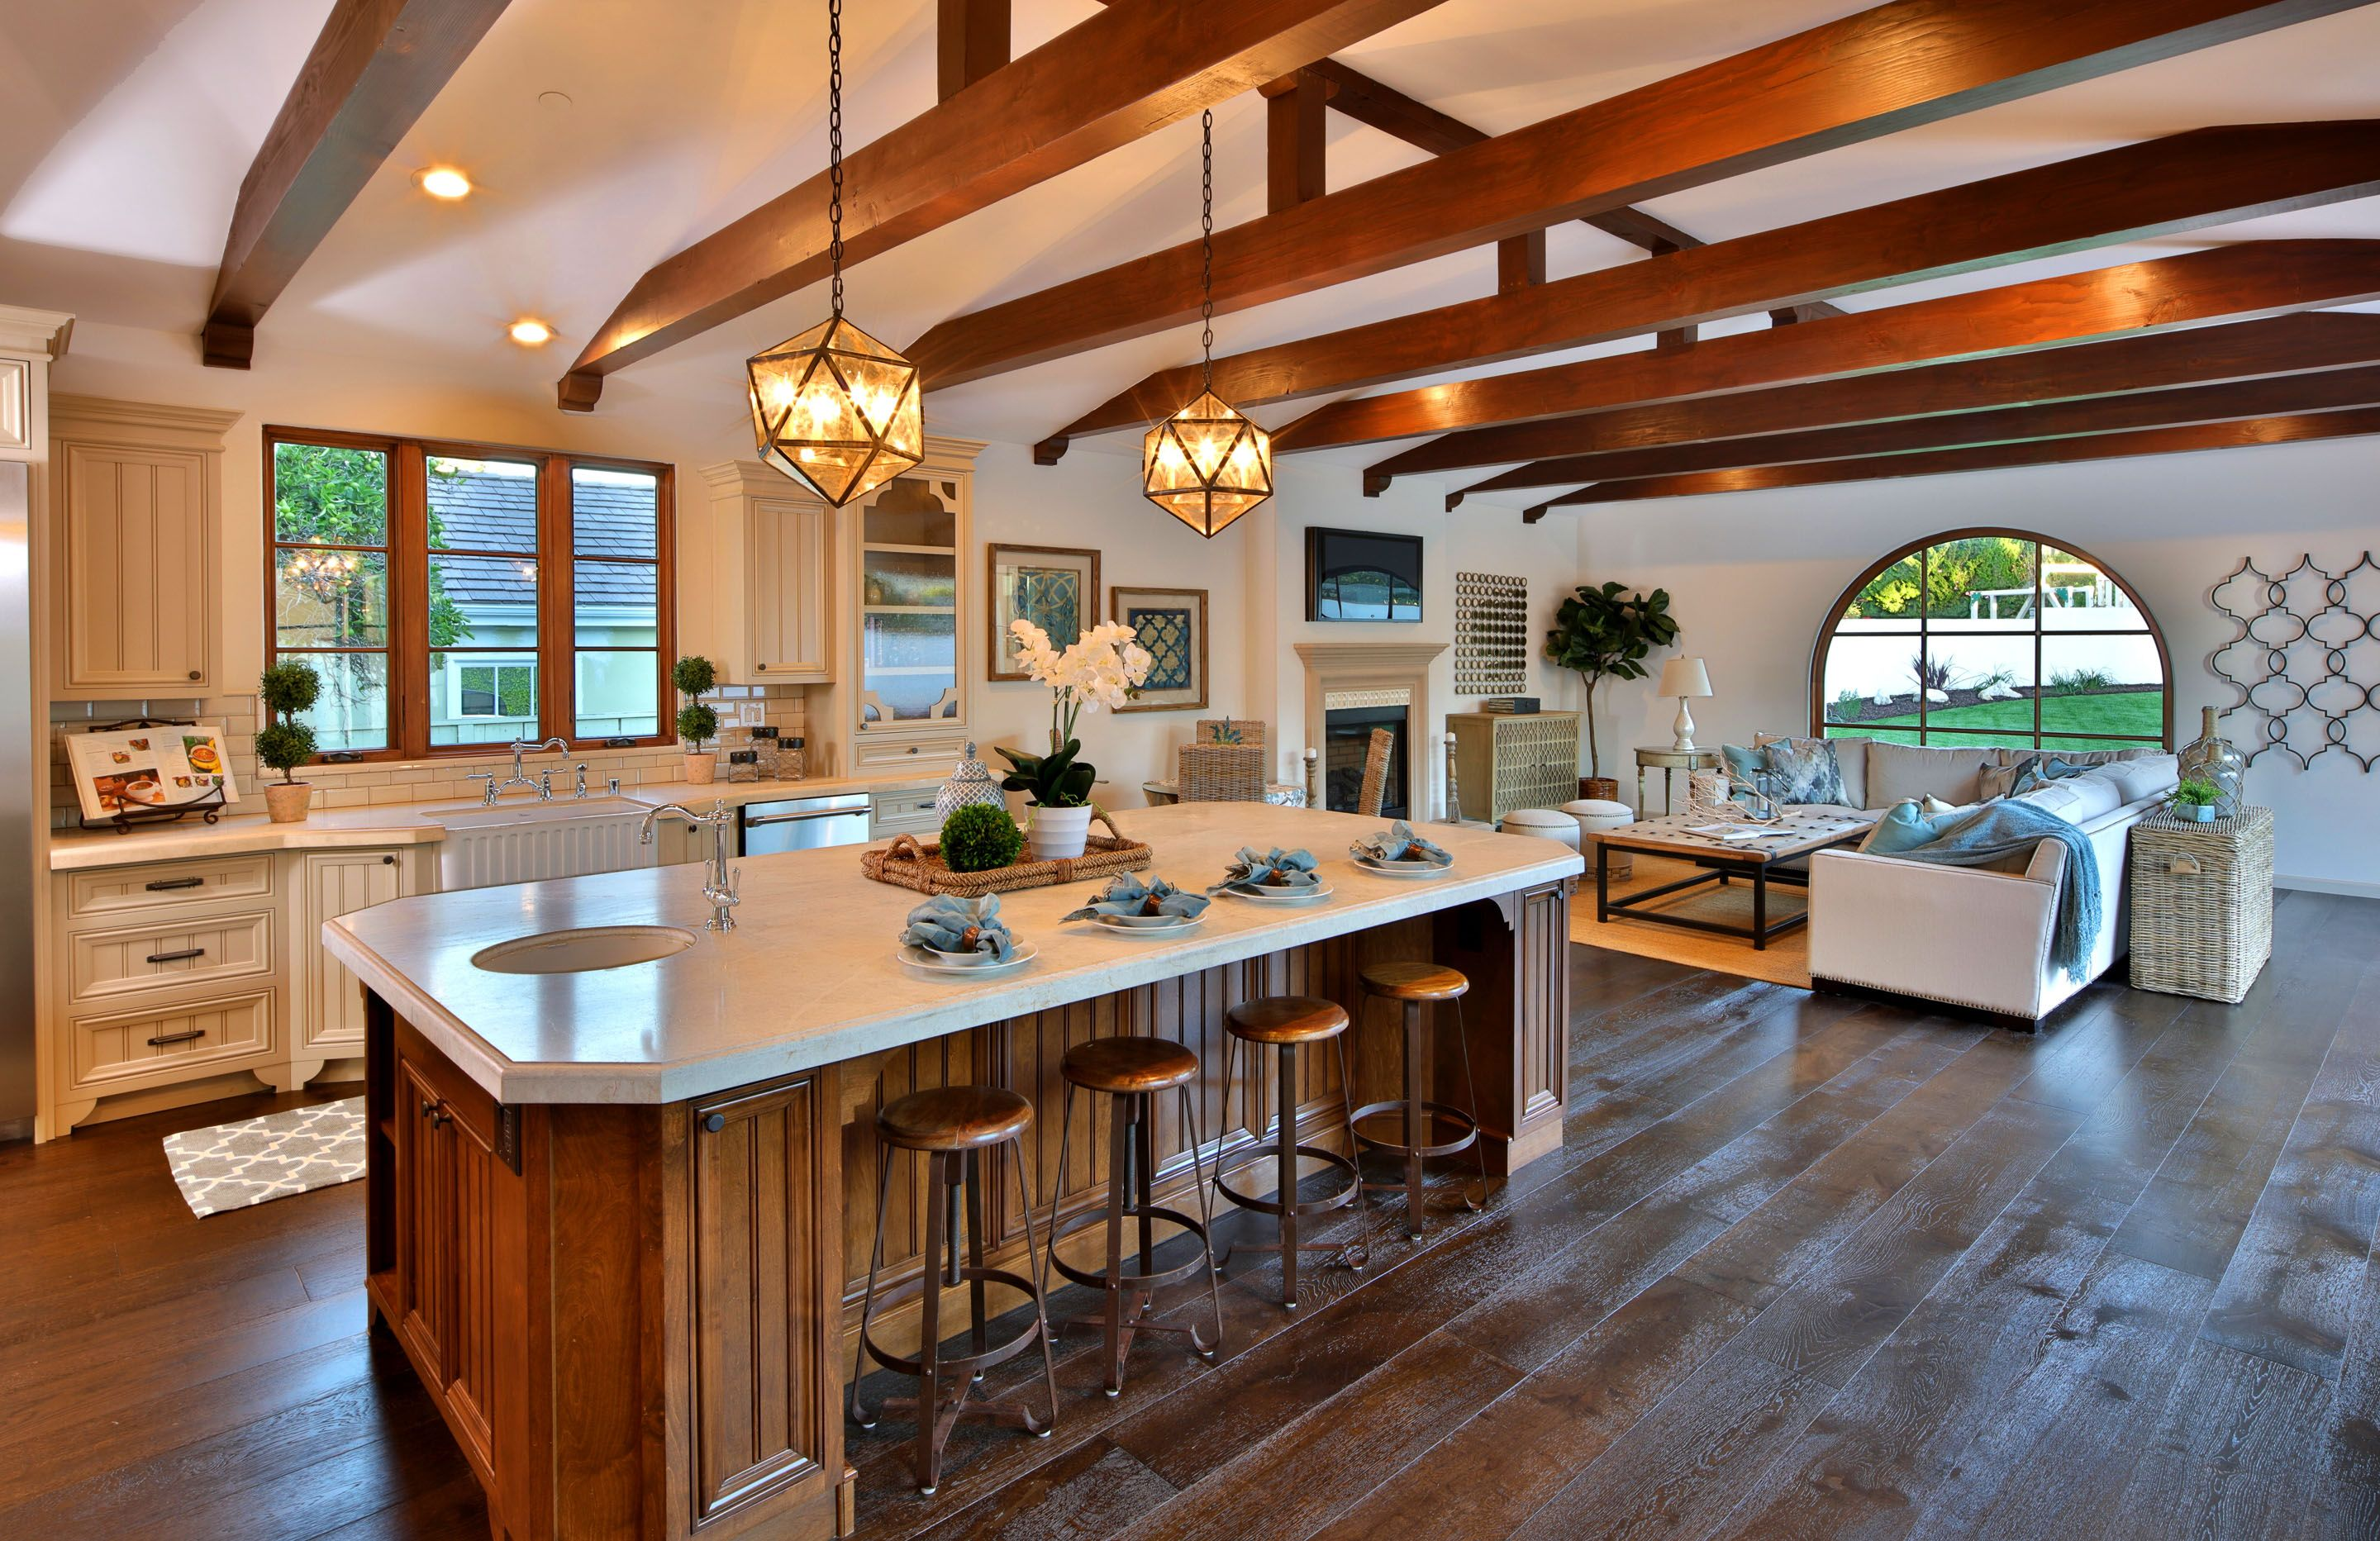 Open Concept Luxury Modern Home With Wood Beam Ceiling Luxury Modern Homes Home Decor Kitchen Wood Beam Ceiling